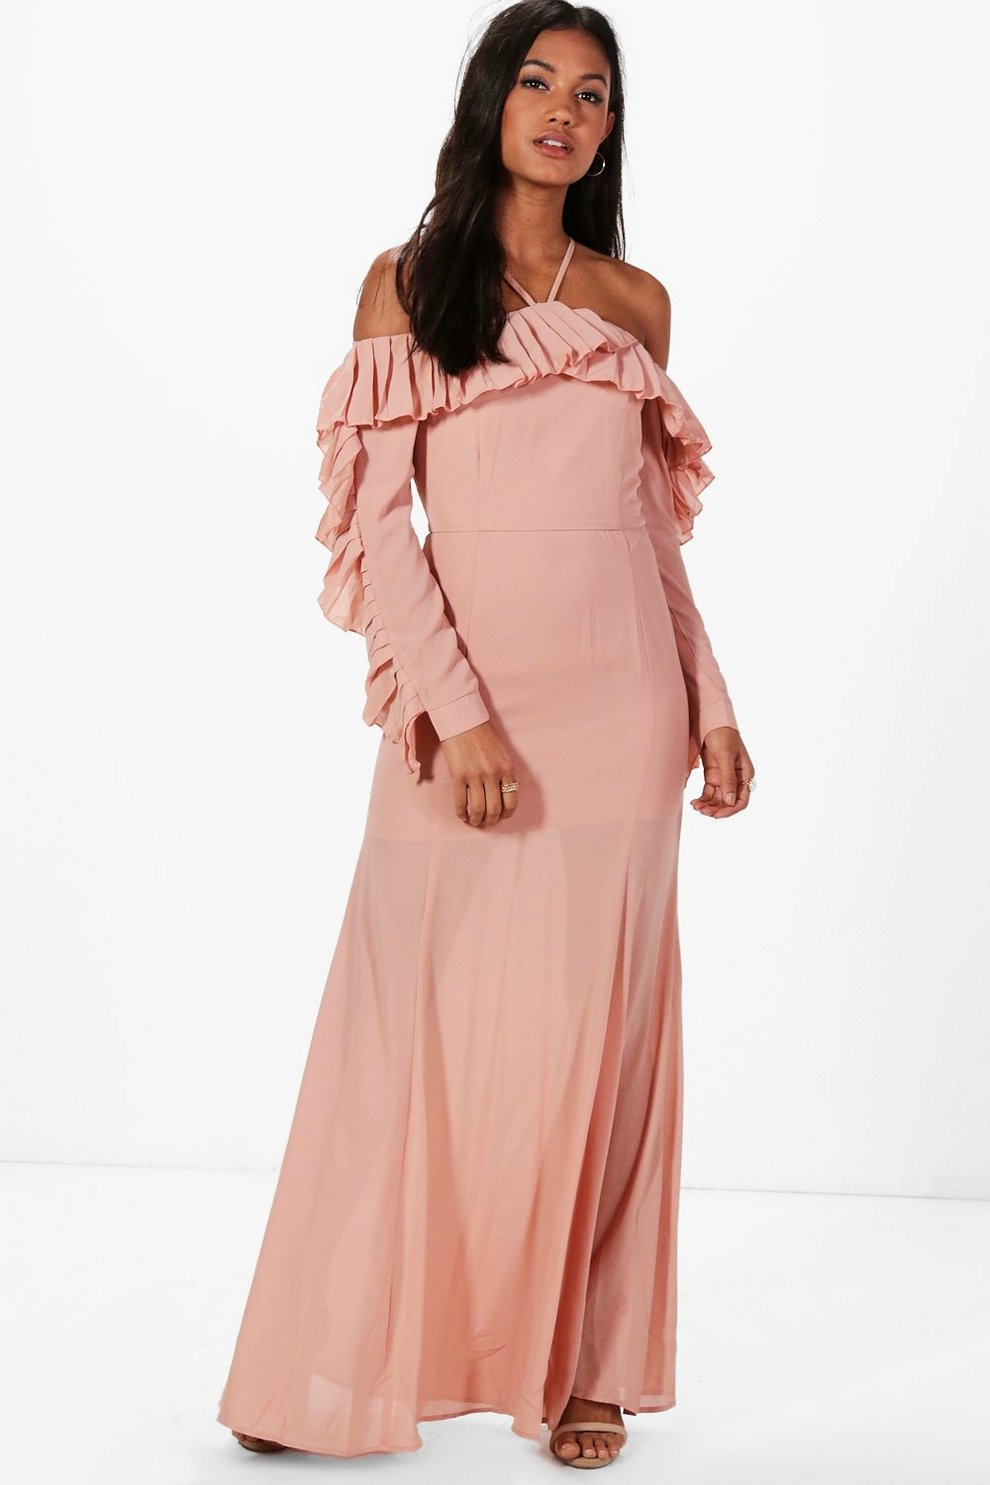 Image result for Boutique Alex Pleated Frill Maxi Dress